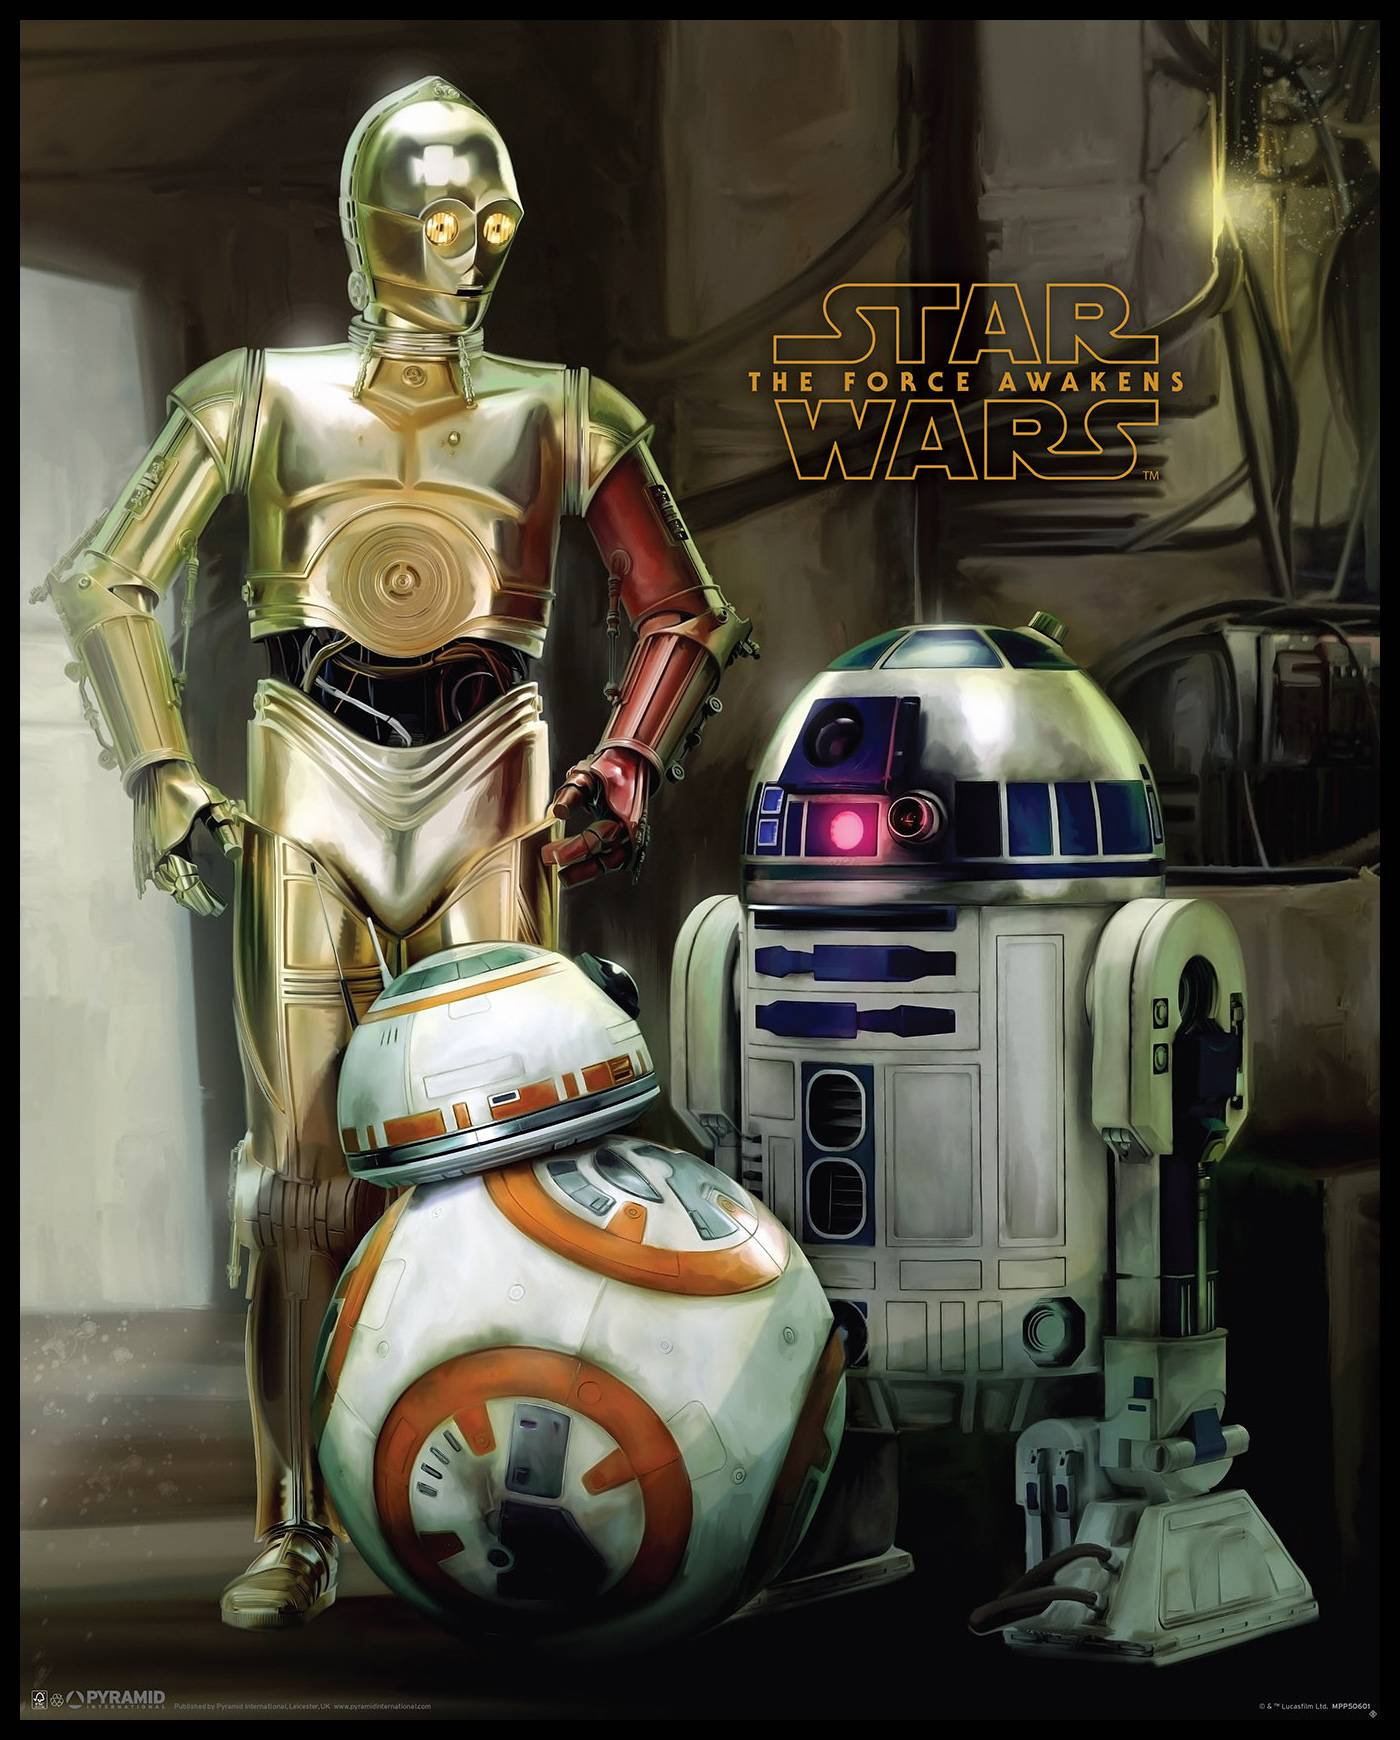 By Agus Star Wars Episode VII - Droids - 40x50 cm